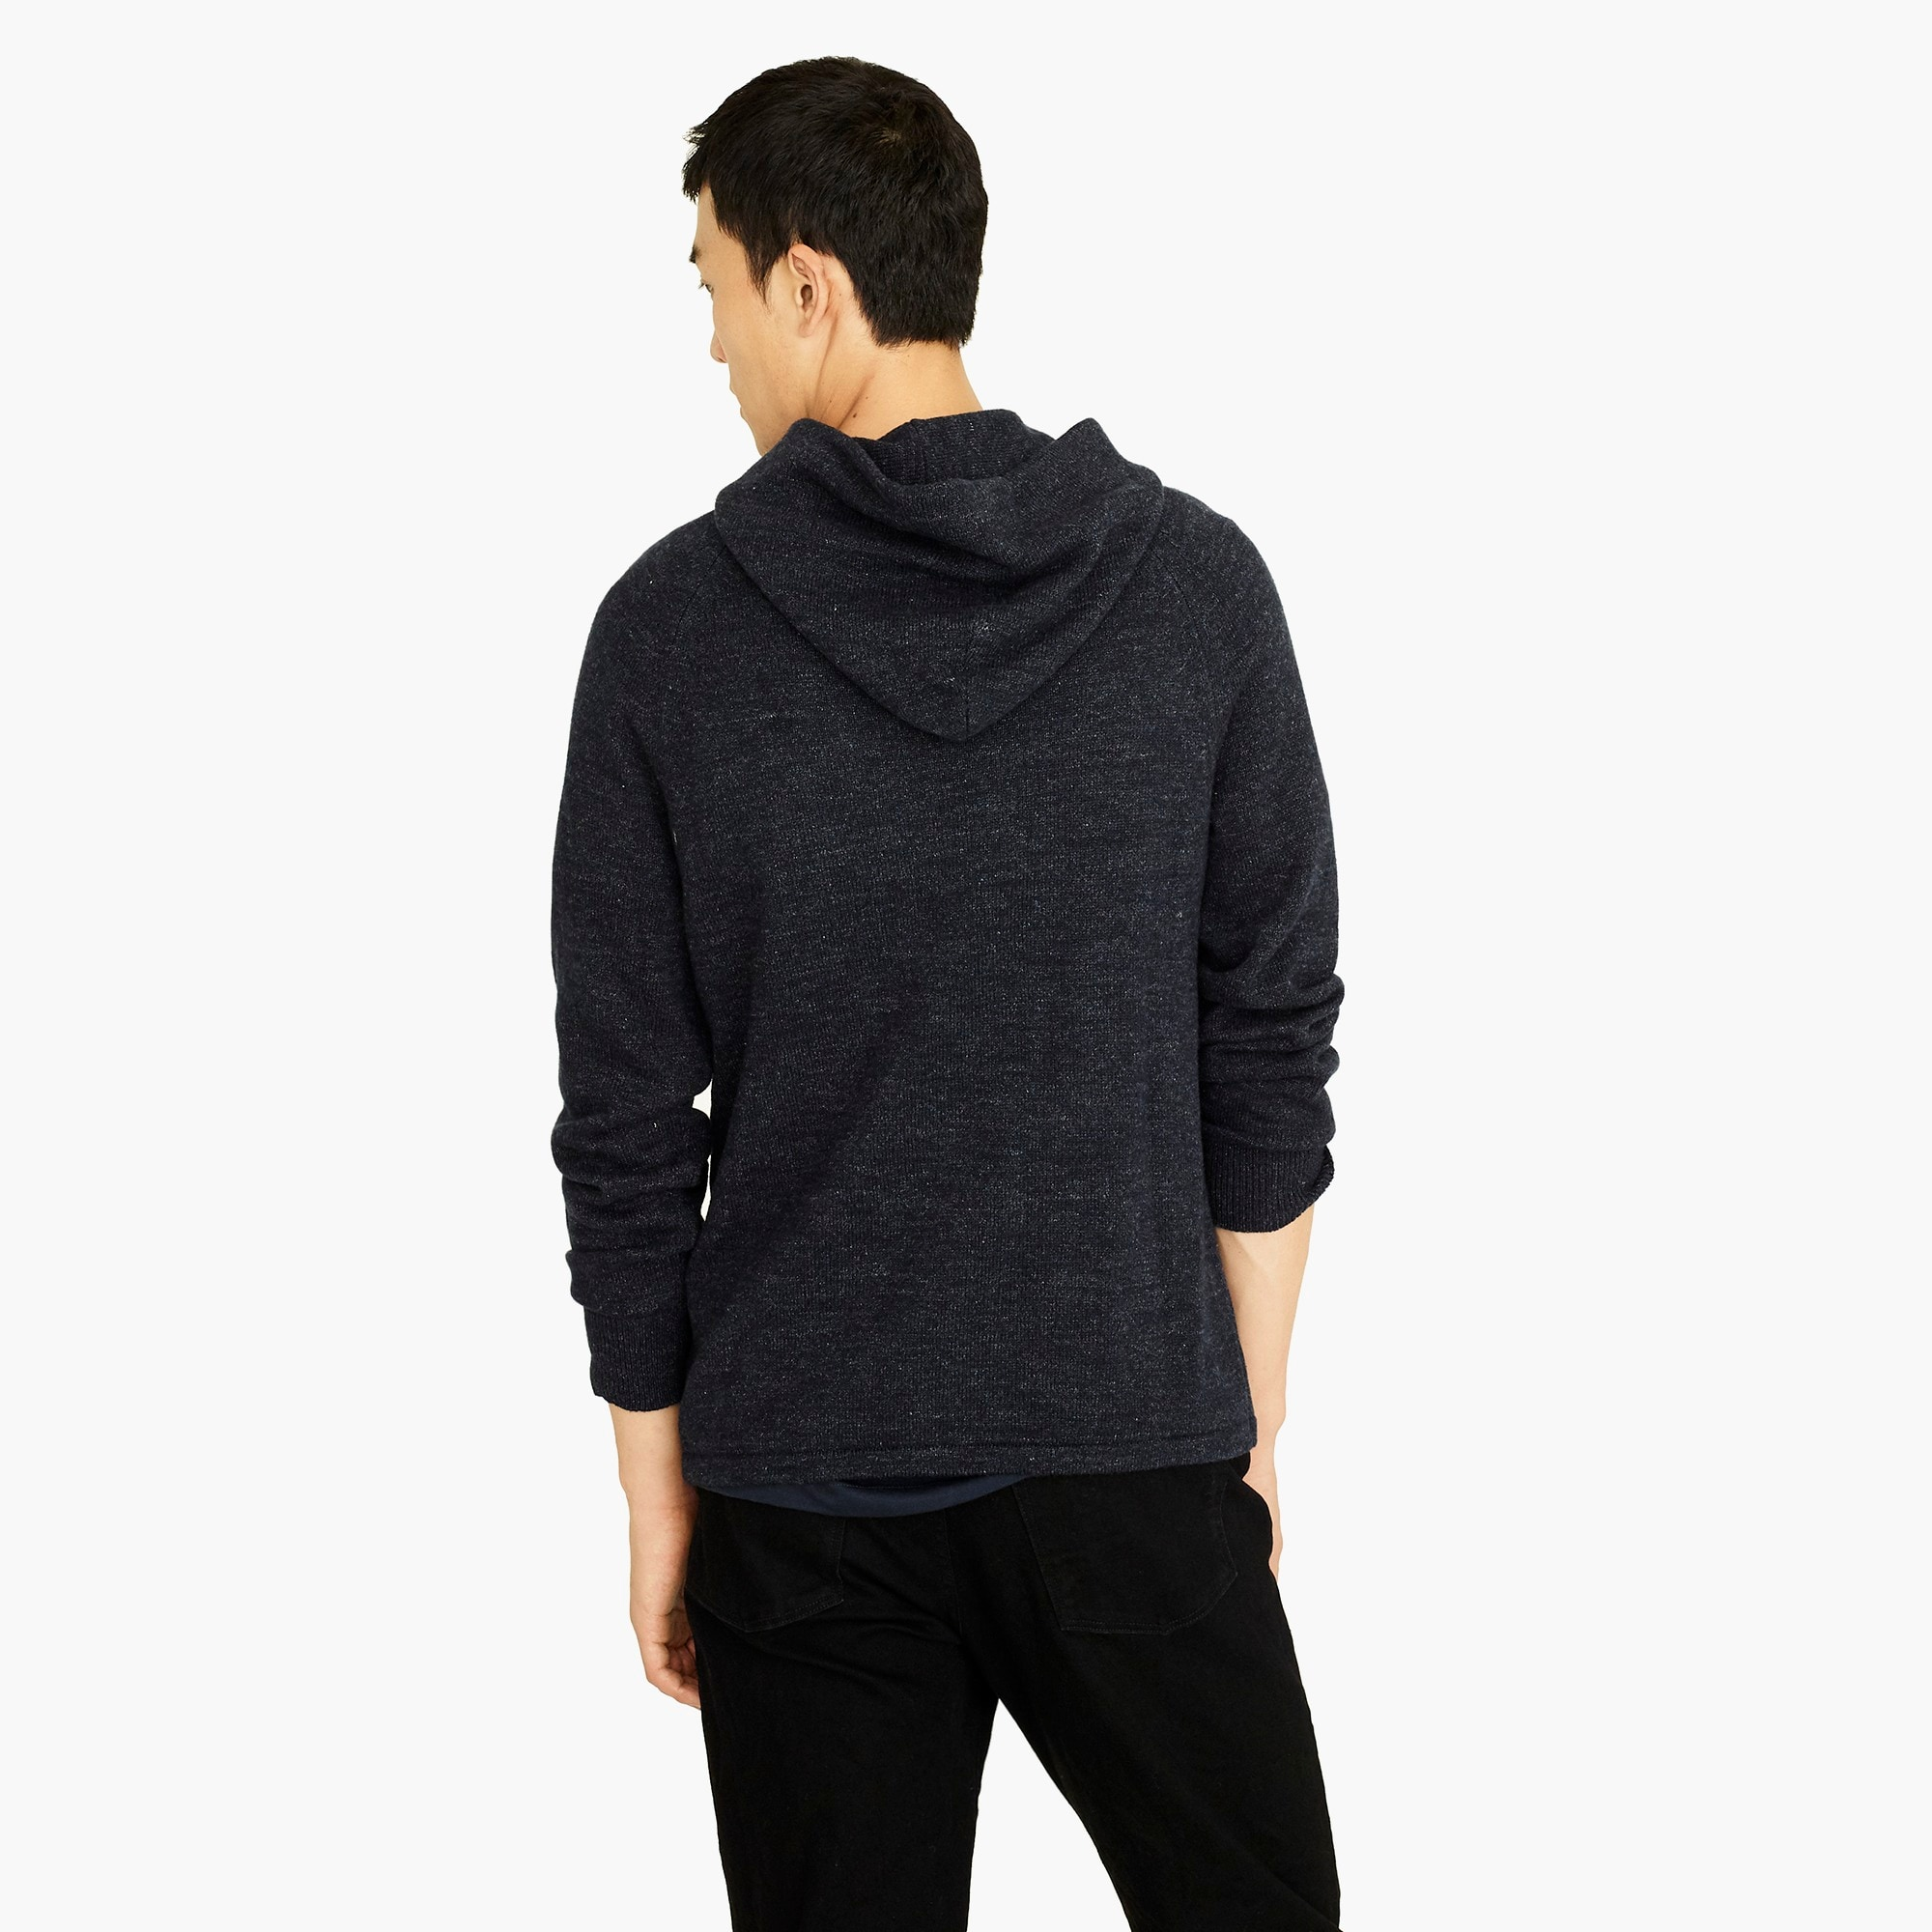 Image 3 for Cotton-wool sweater hoodie